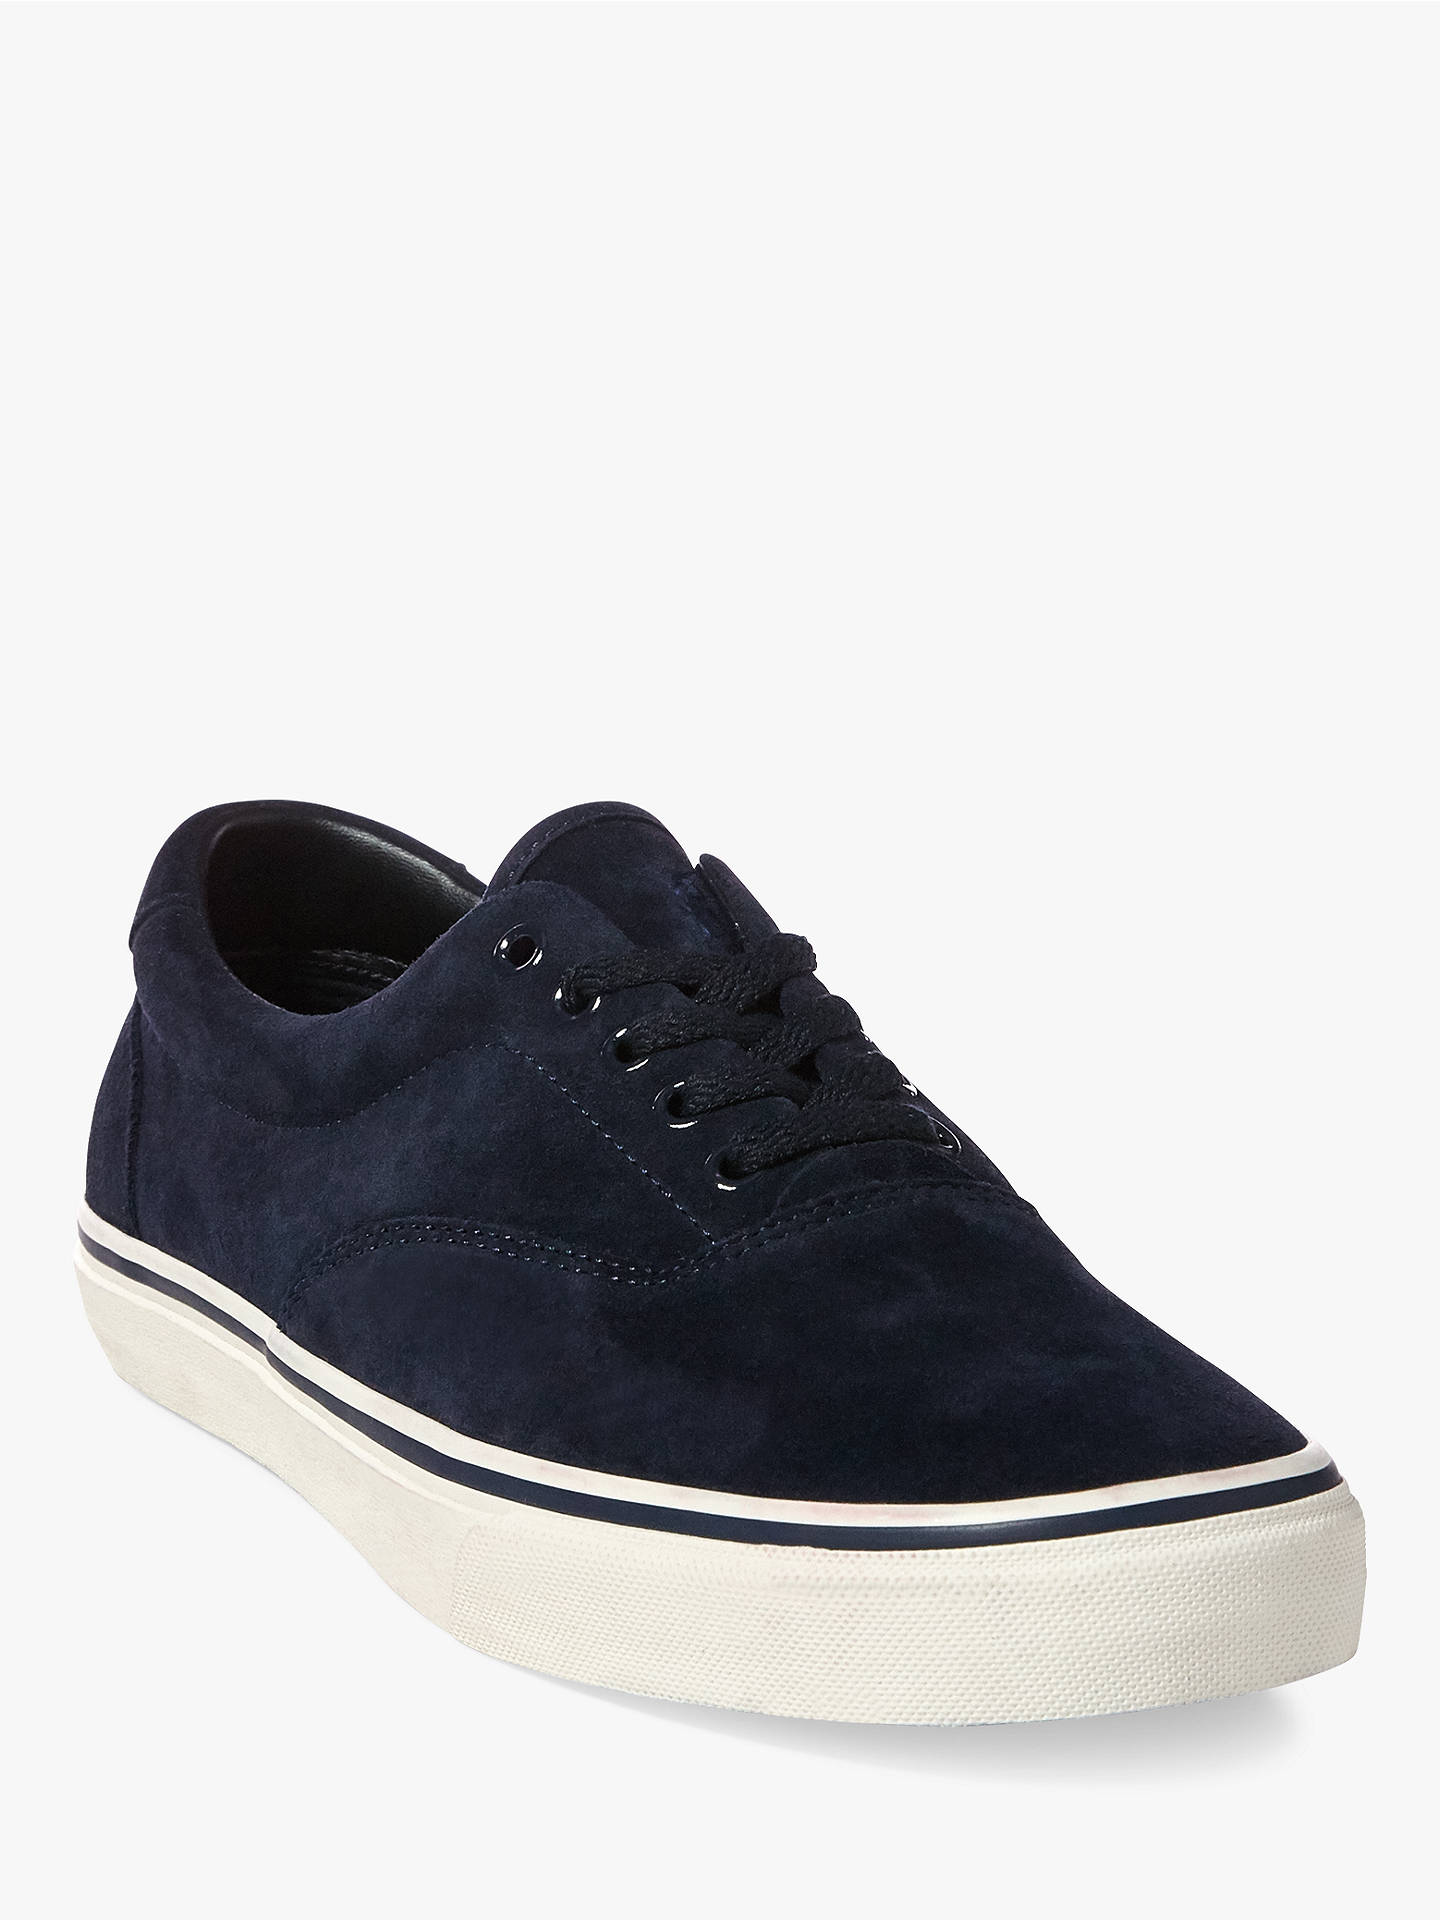 Buy Polo Ralph Lauren Thorton Suede Trainers, Deep Olive, 10 Online at johnlewis.com